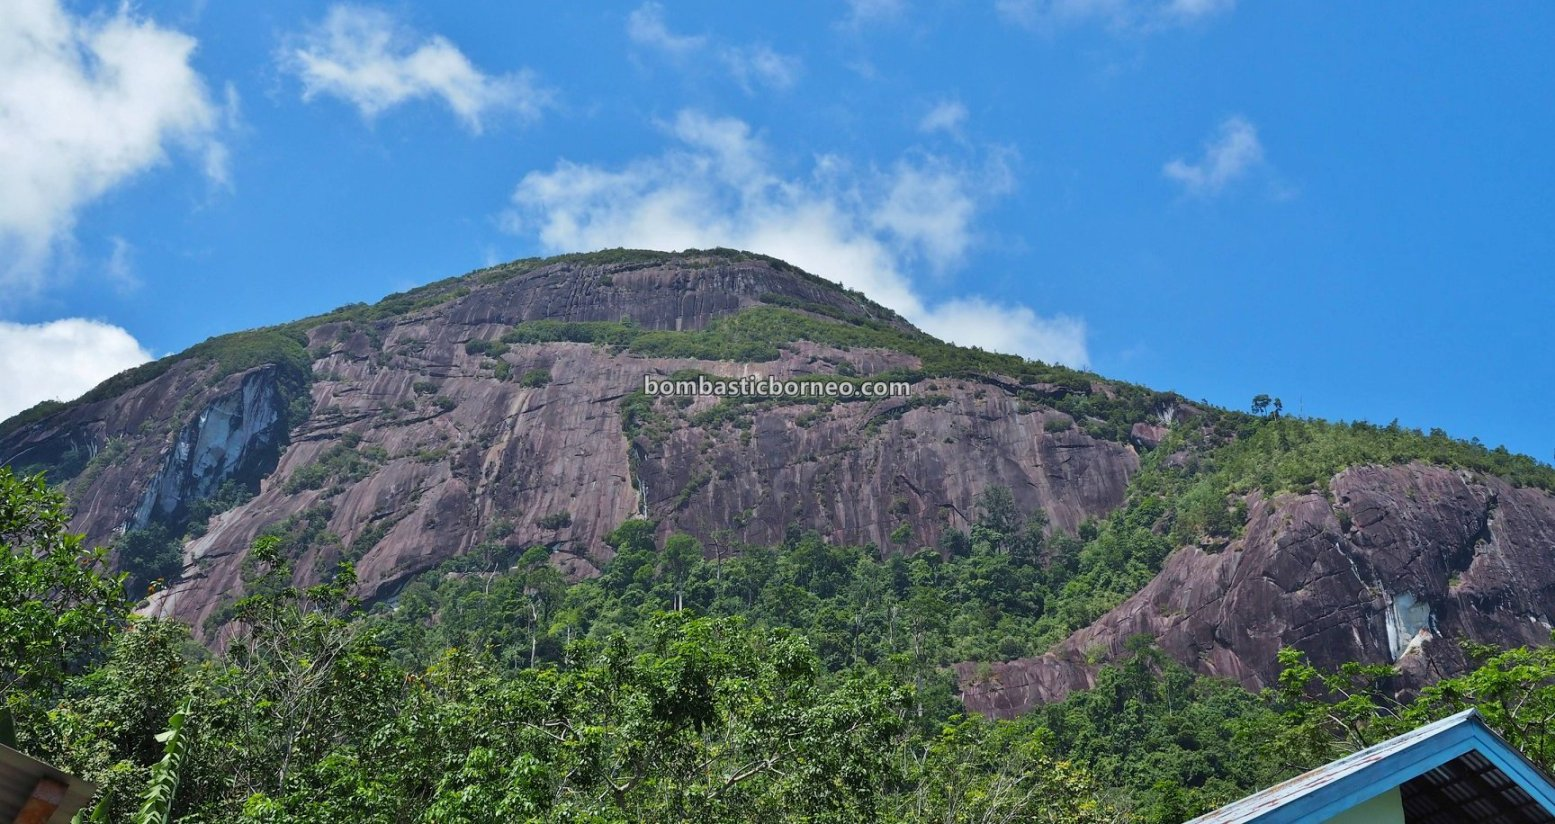 monolith, Bukit Kelam, Mountain, Kelam Hill, batu raksasa, adventure, nature, outdoor, destination, Sintang, Borneo, Indonesia, West Kalimantan, Tourism, tourist attraction, Cross Border